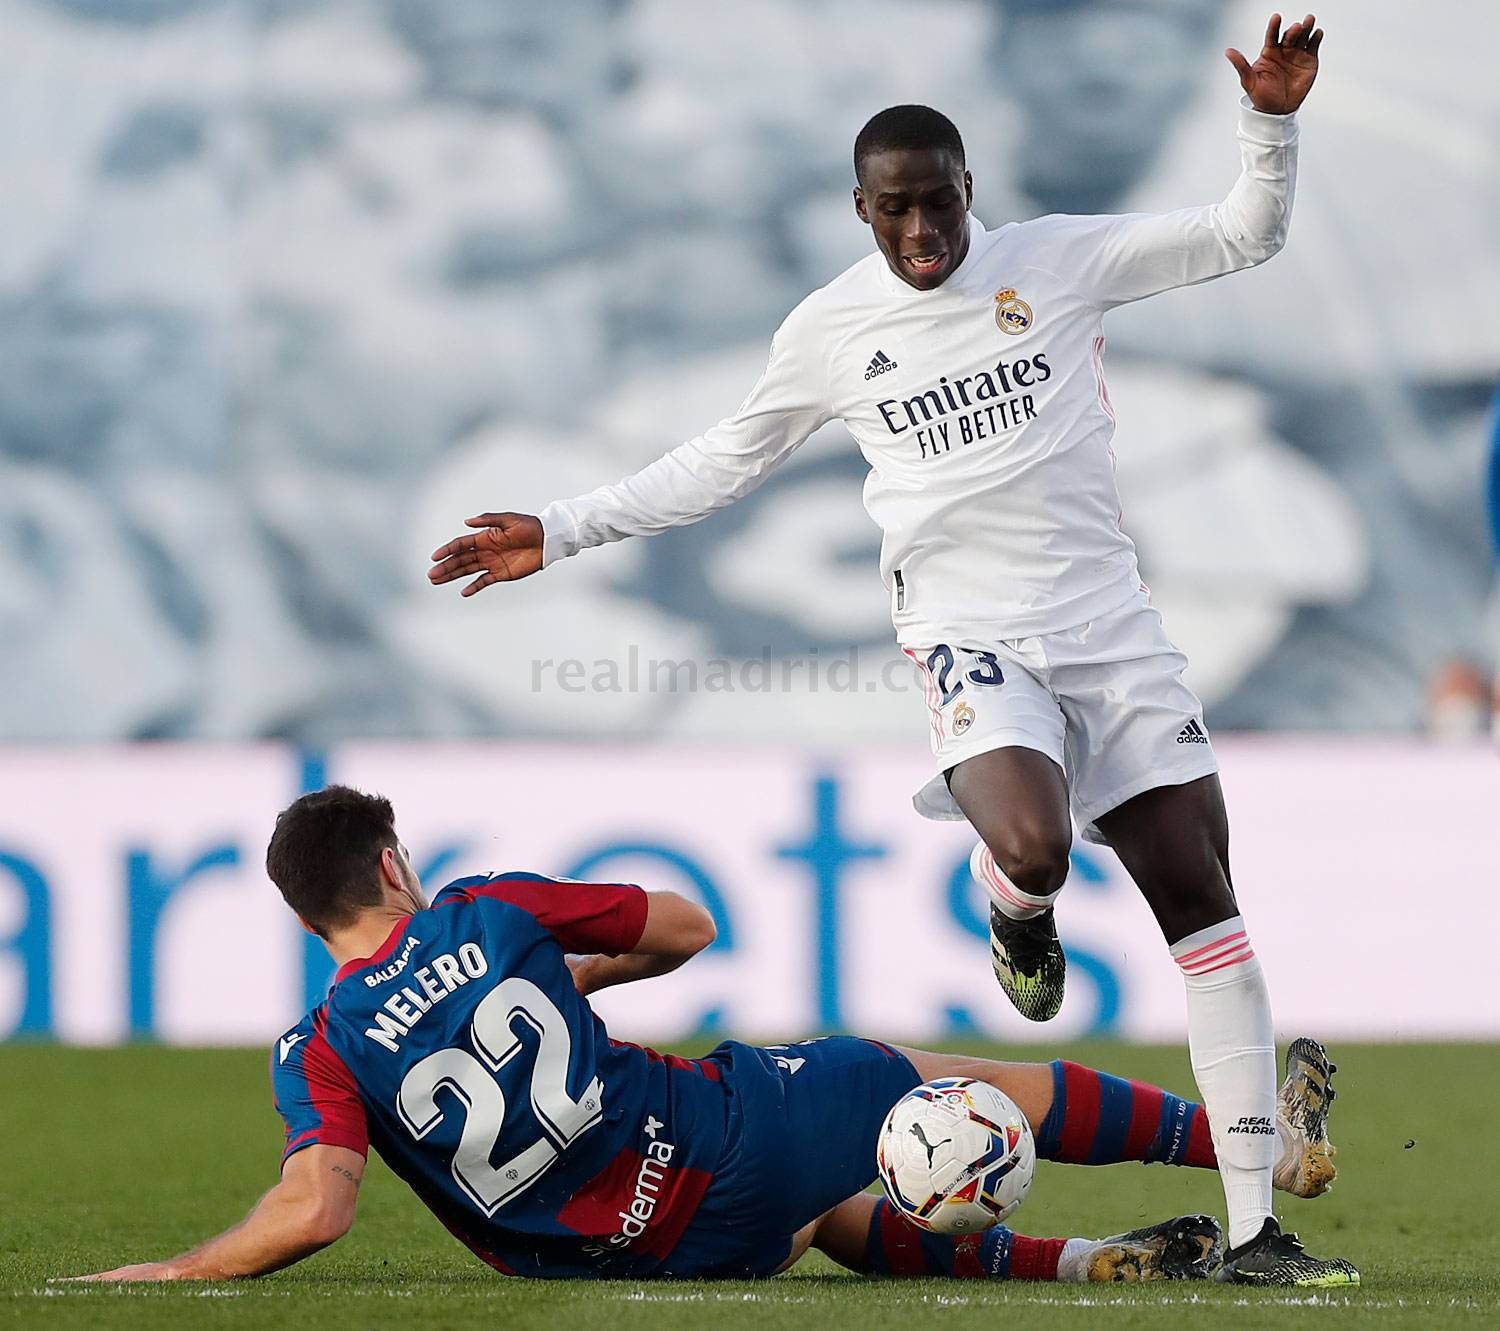 Real Madrid - Real Madrid - Levante - 30-01-2021